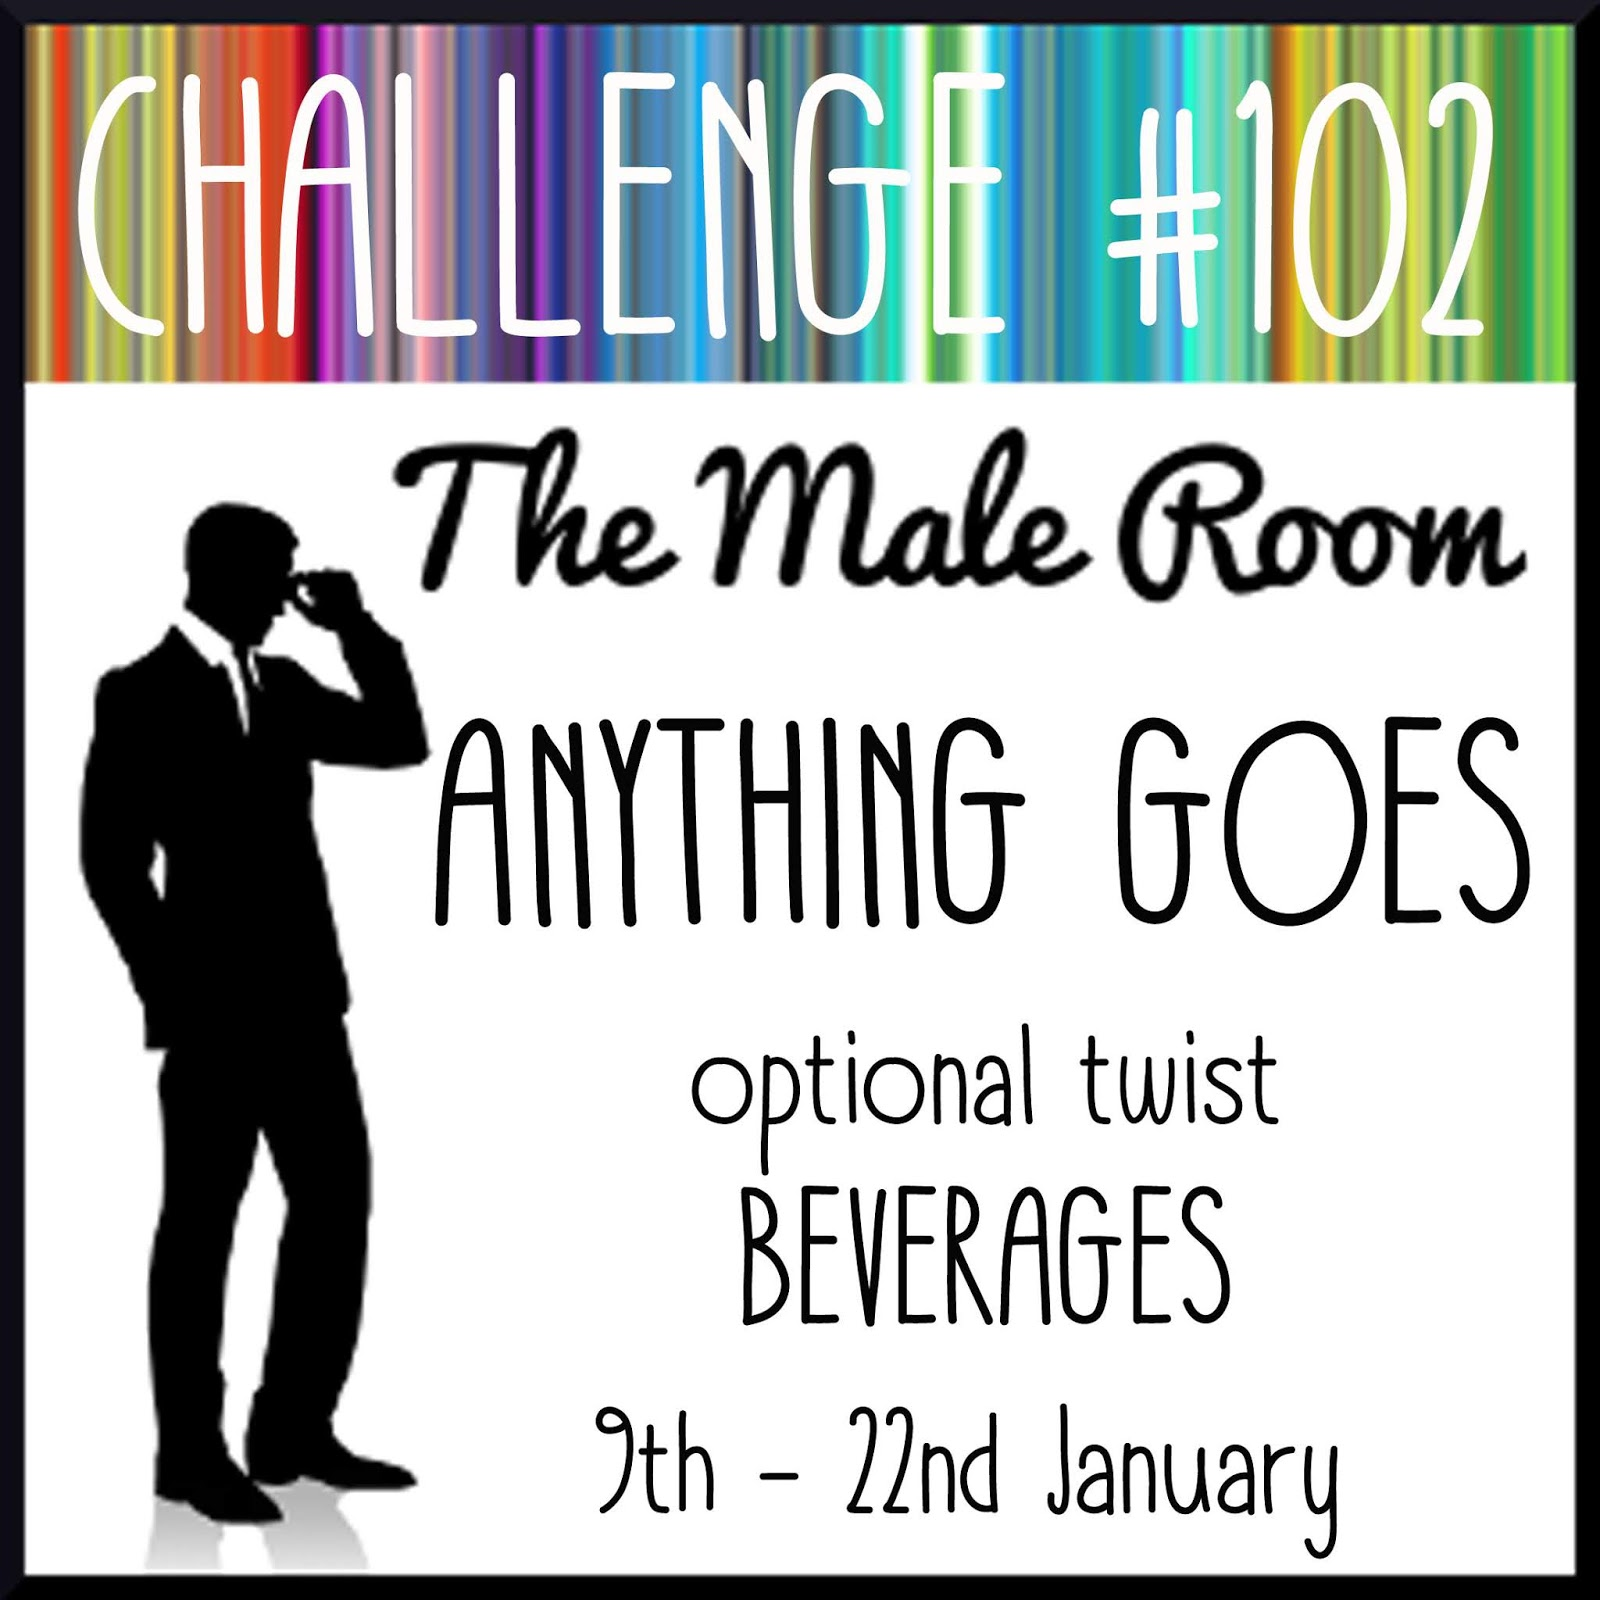 https://themaleroomchallengeblog.blogspot.com/2019/01/challenge-102-anything-goes-optional.html